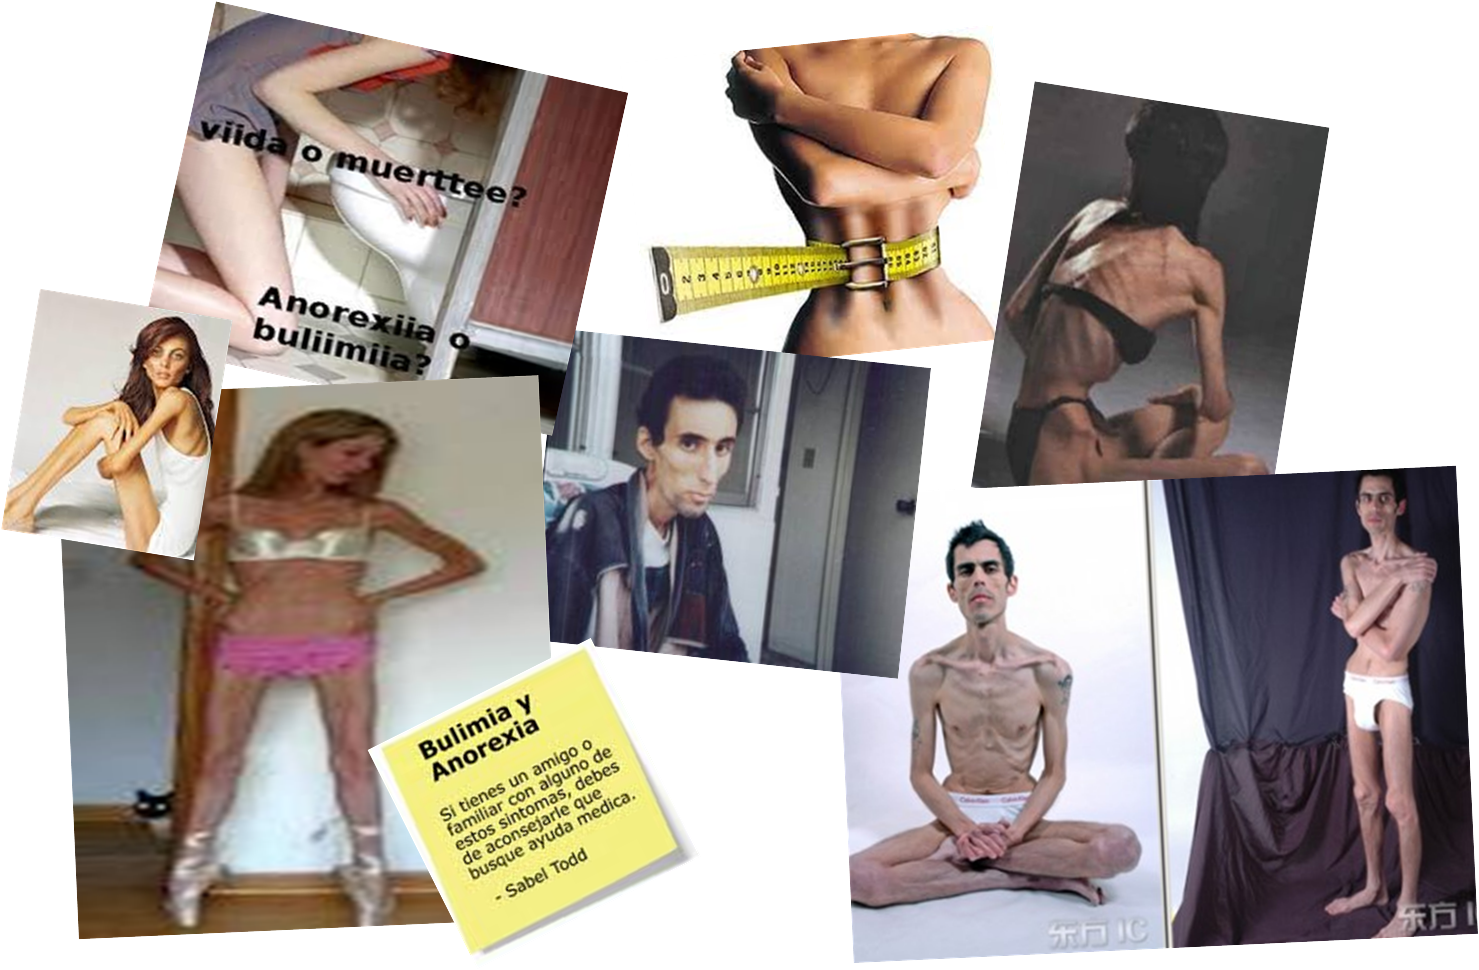 bulimia and anorexia a growing epidemic Read bulimia & anorexia is growing in the us free essay and over 88,000 other research documents bulimia & anorexia is growing in the us bulimia and anorexia is a growing epidemic in america.